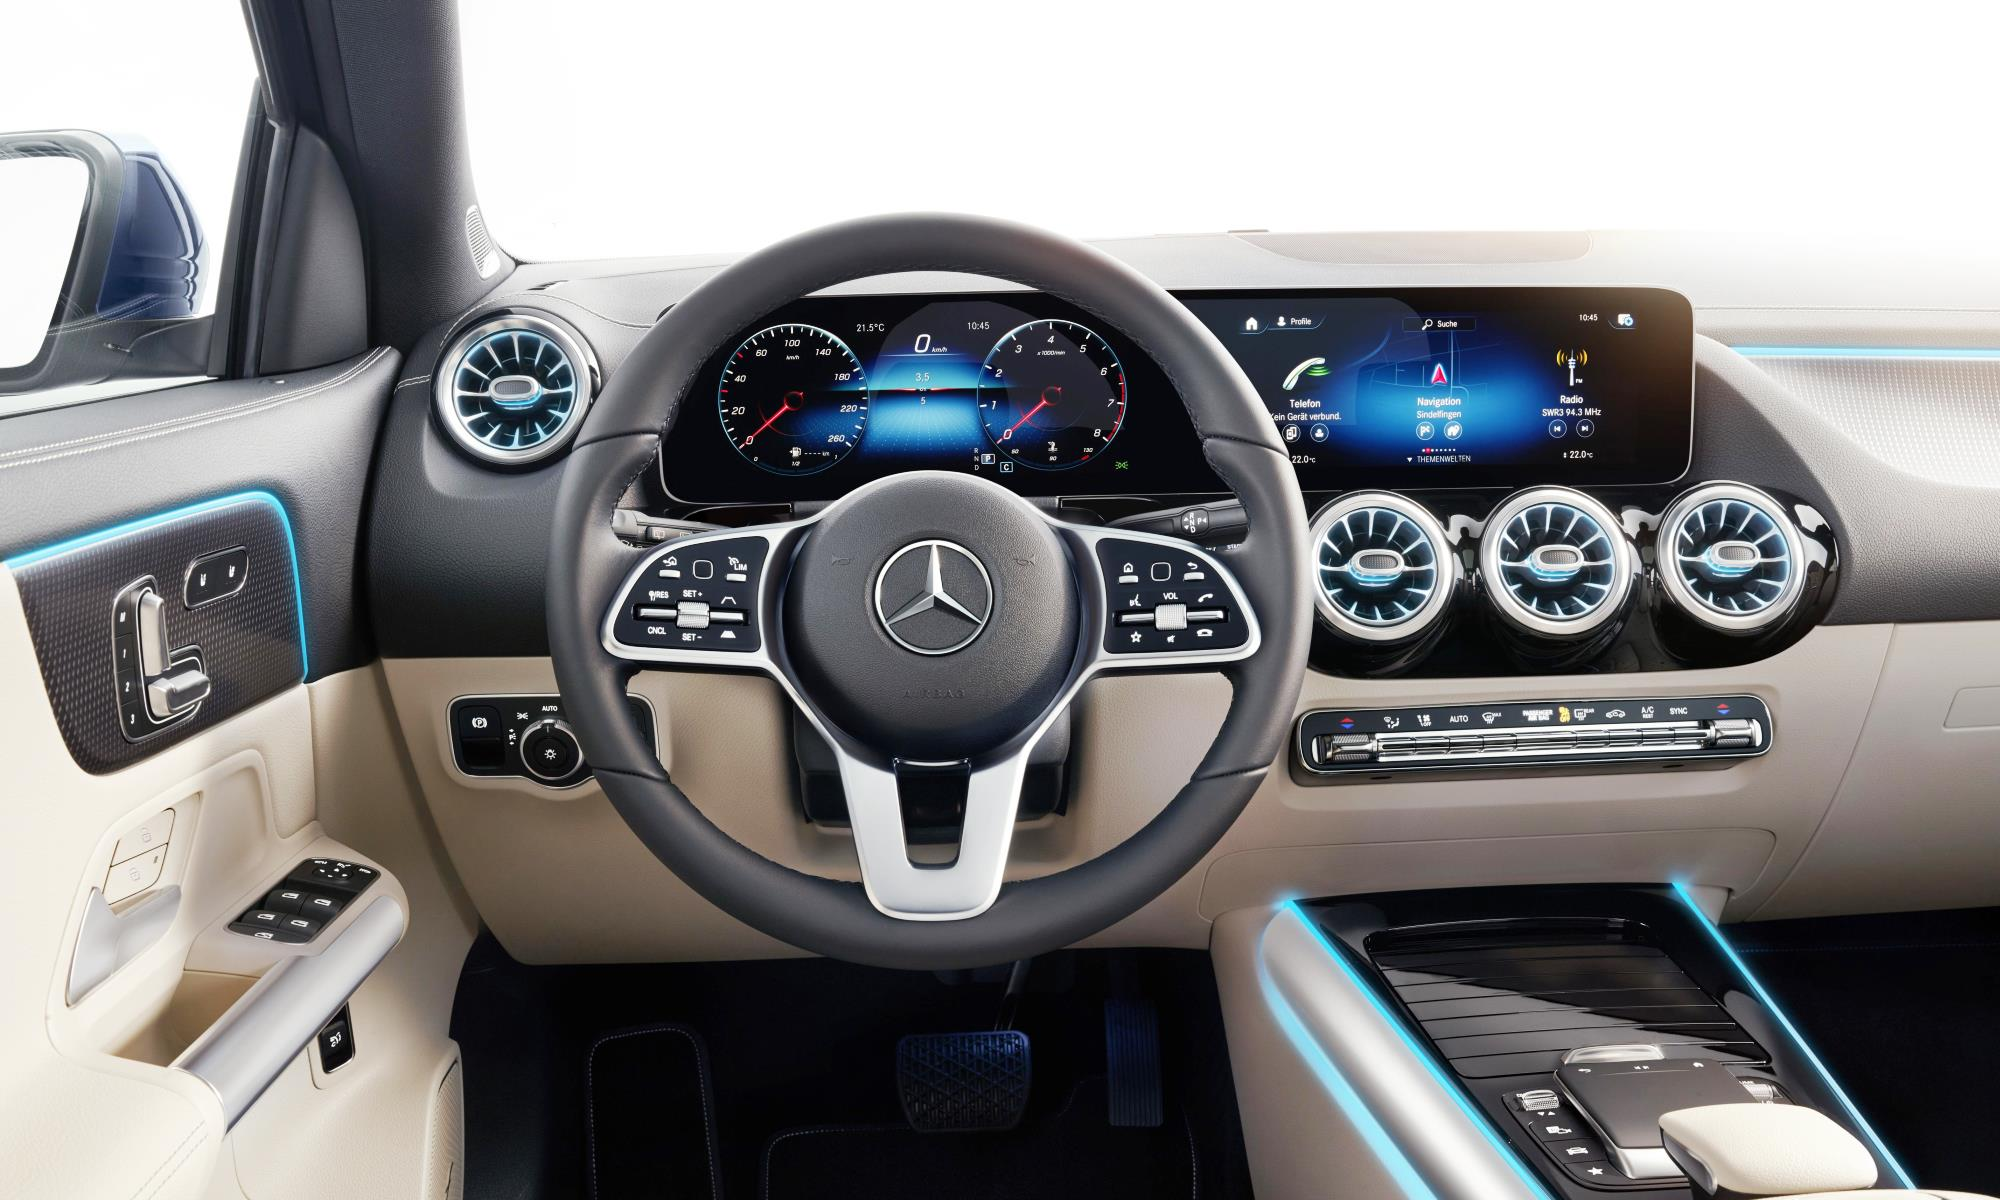 New Mercedes-Benz GLA interior